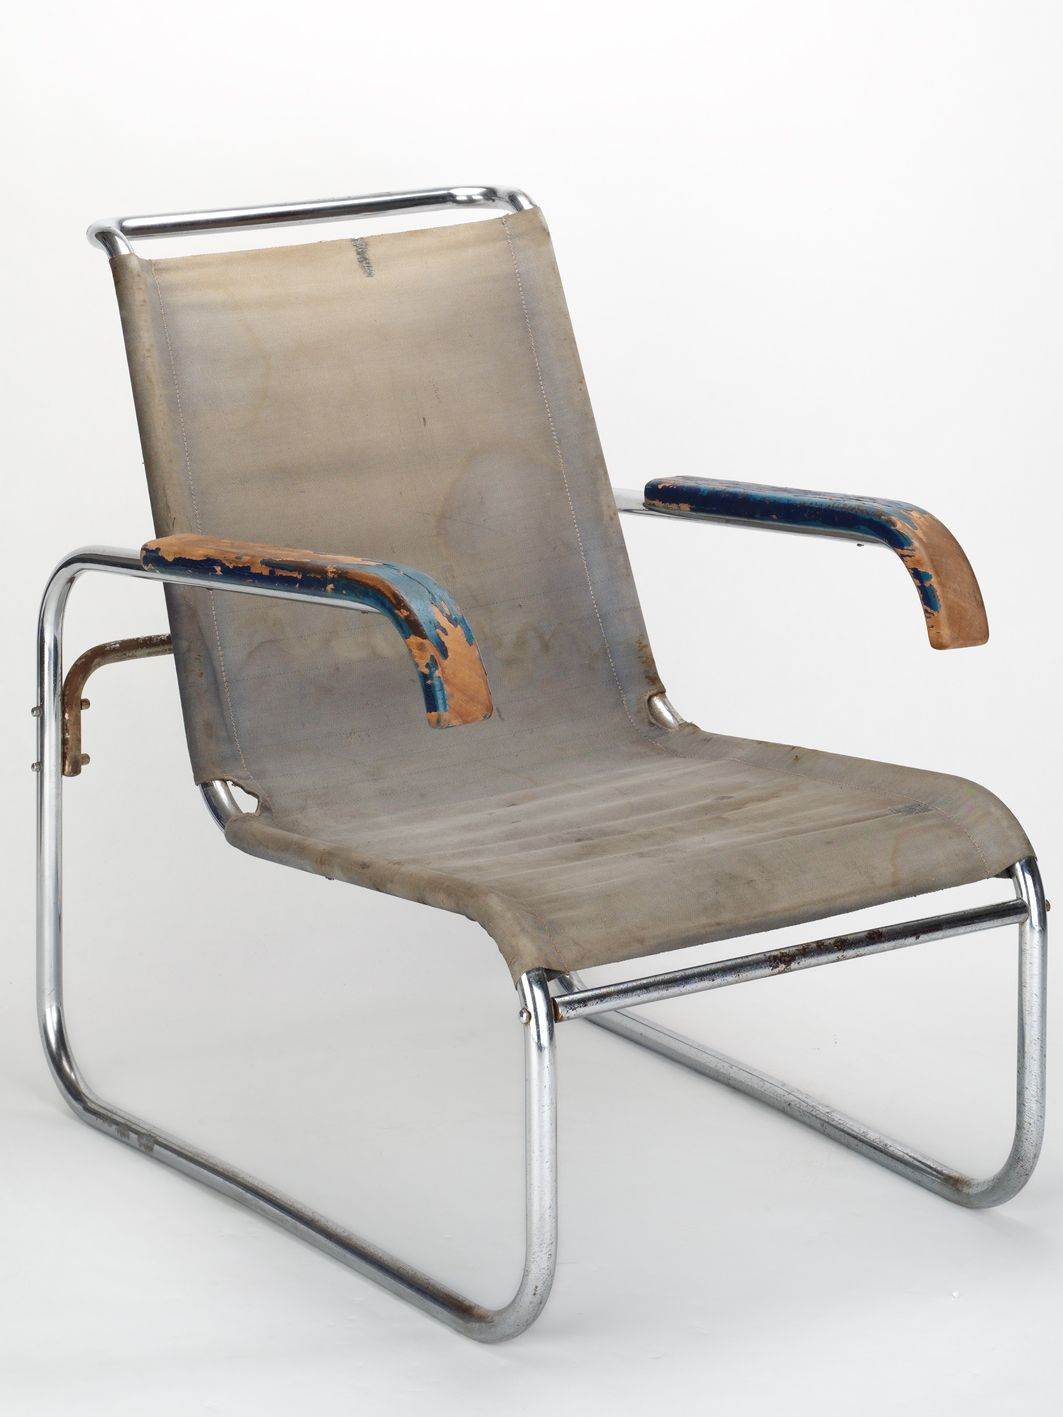 Marcel Breuer, B 35 (1929) - Well used relic from the ...